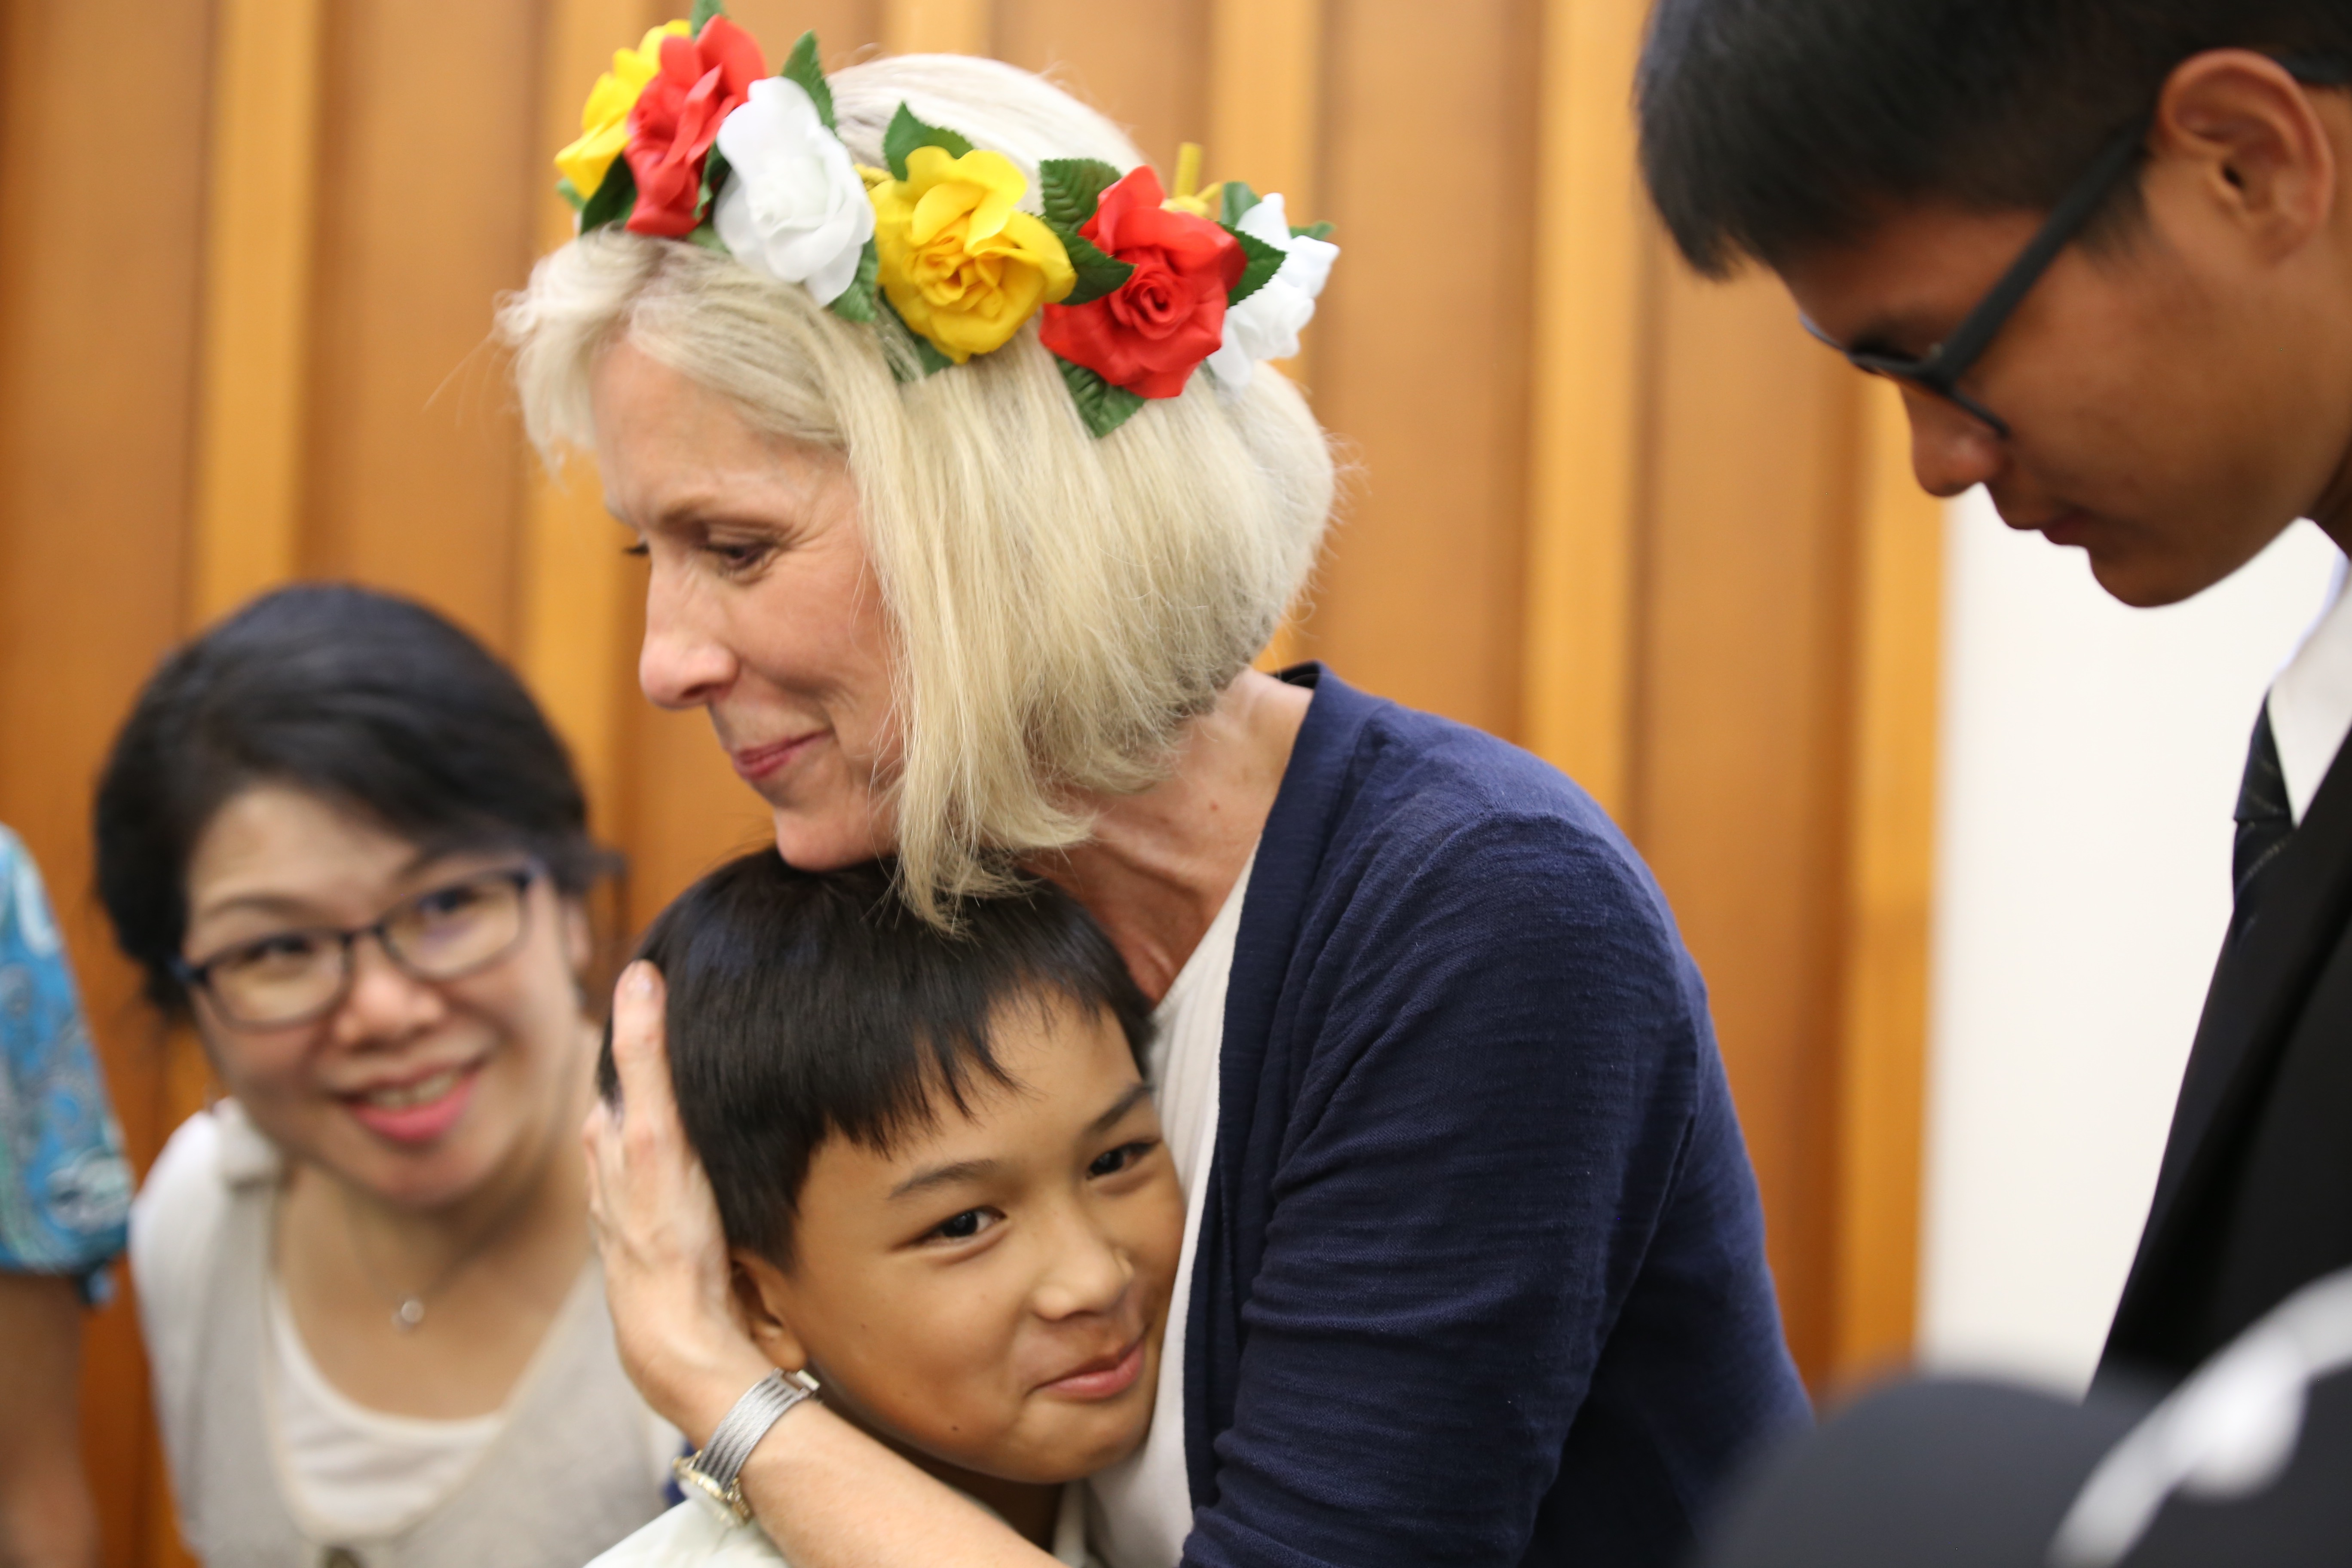 Sister Joy D. Jones, Primary general president, hugs a youth member following a devotional in Taitung, Taiwan, where she danced with members during a visit to the Asia Area from Aug. 17 to 14, 2019.